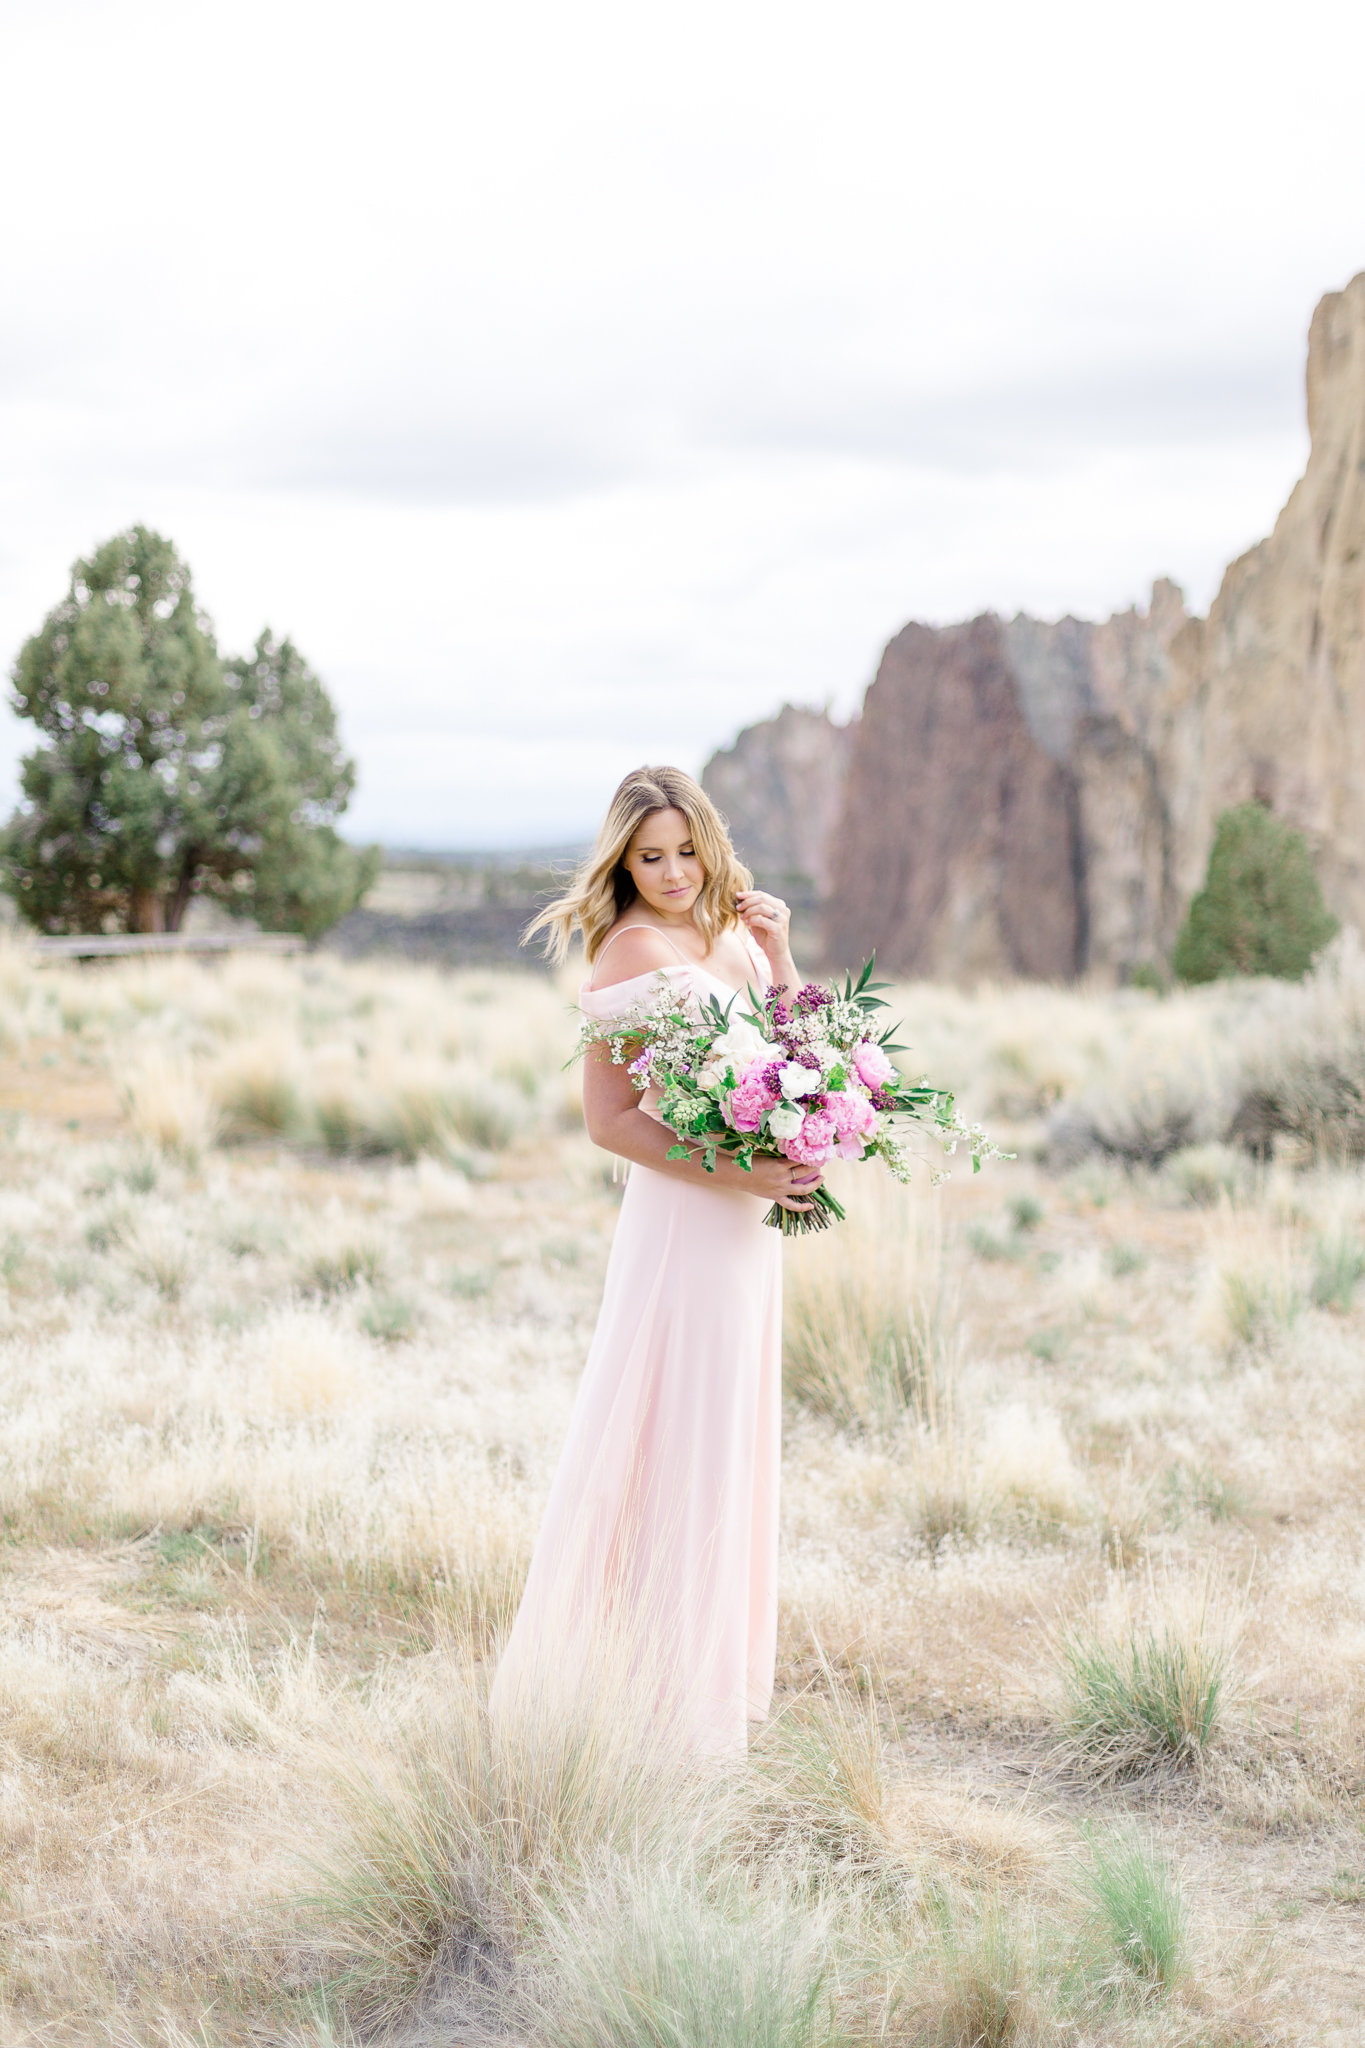 photographe-seance-anniversaire-de-mariage-smith-rock-state-park-oregon-lisa-renault-photographie-wedding-anniversary-session-photographer-7